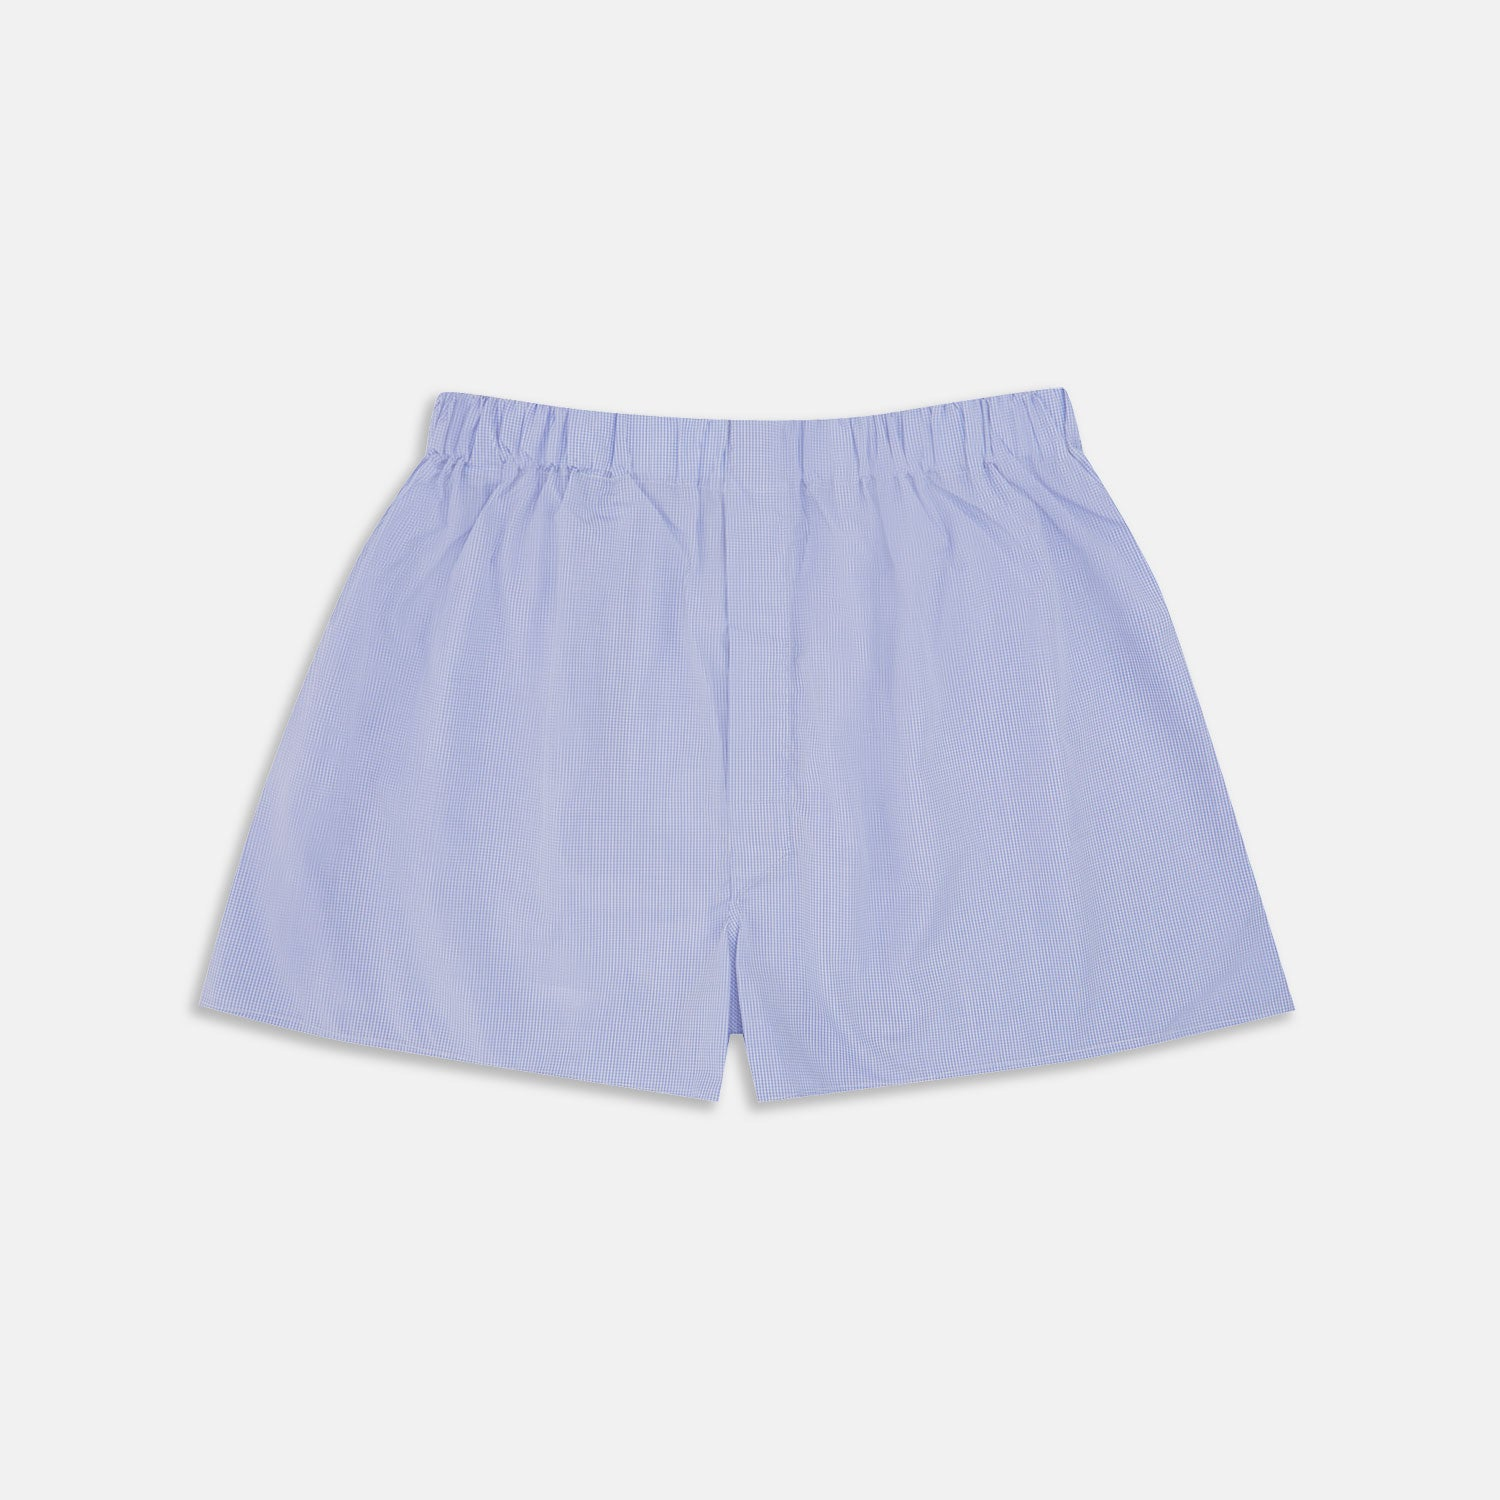 Blue Fine Check Cotton Sea Island Quality Boxer Shorts - M from Turnbull & Asser